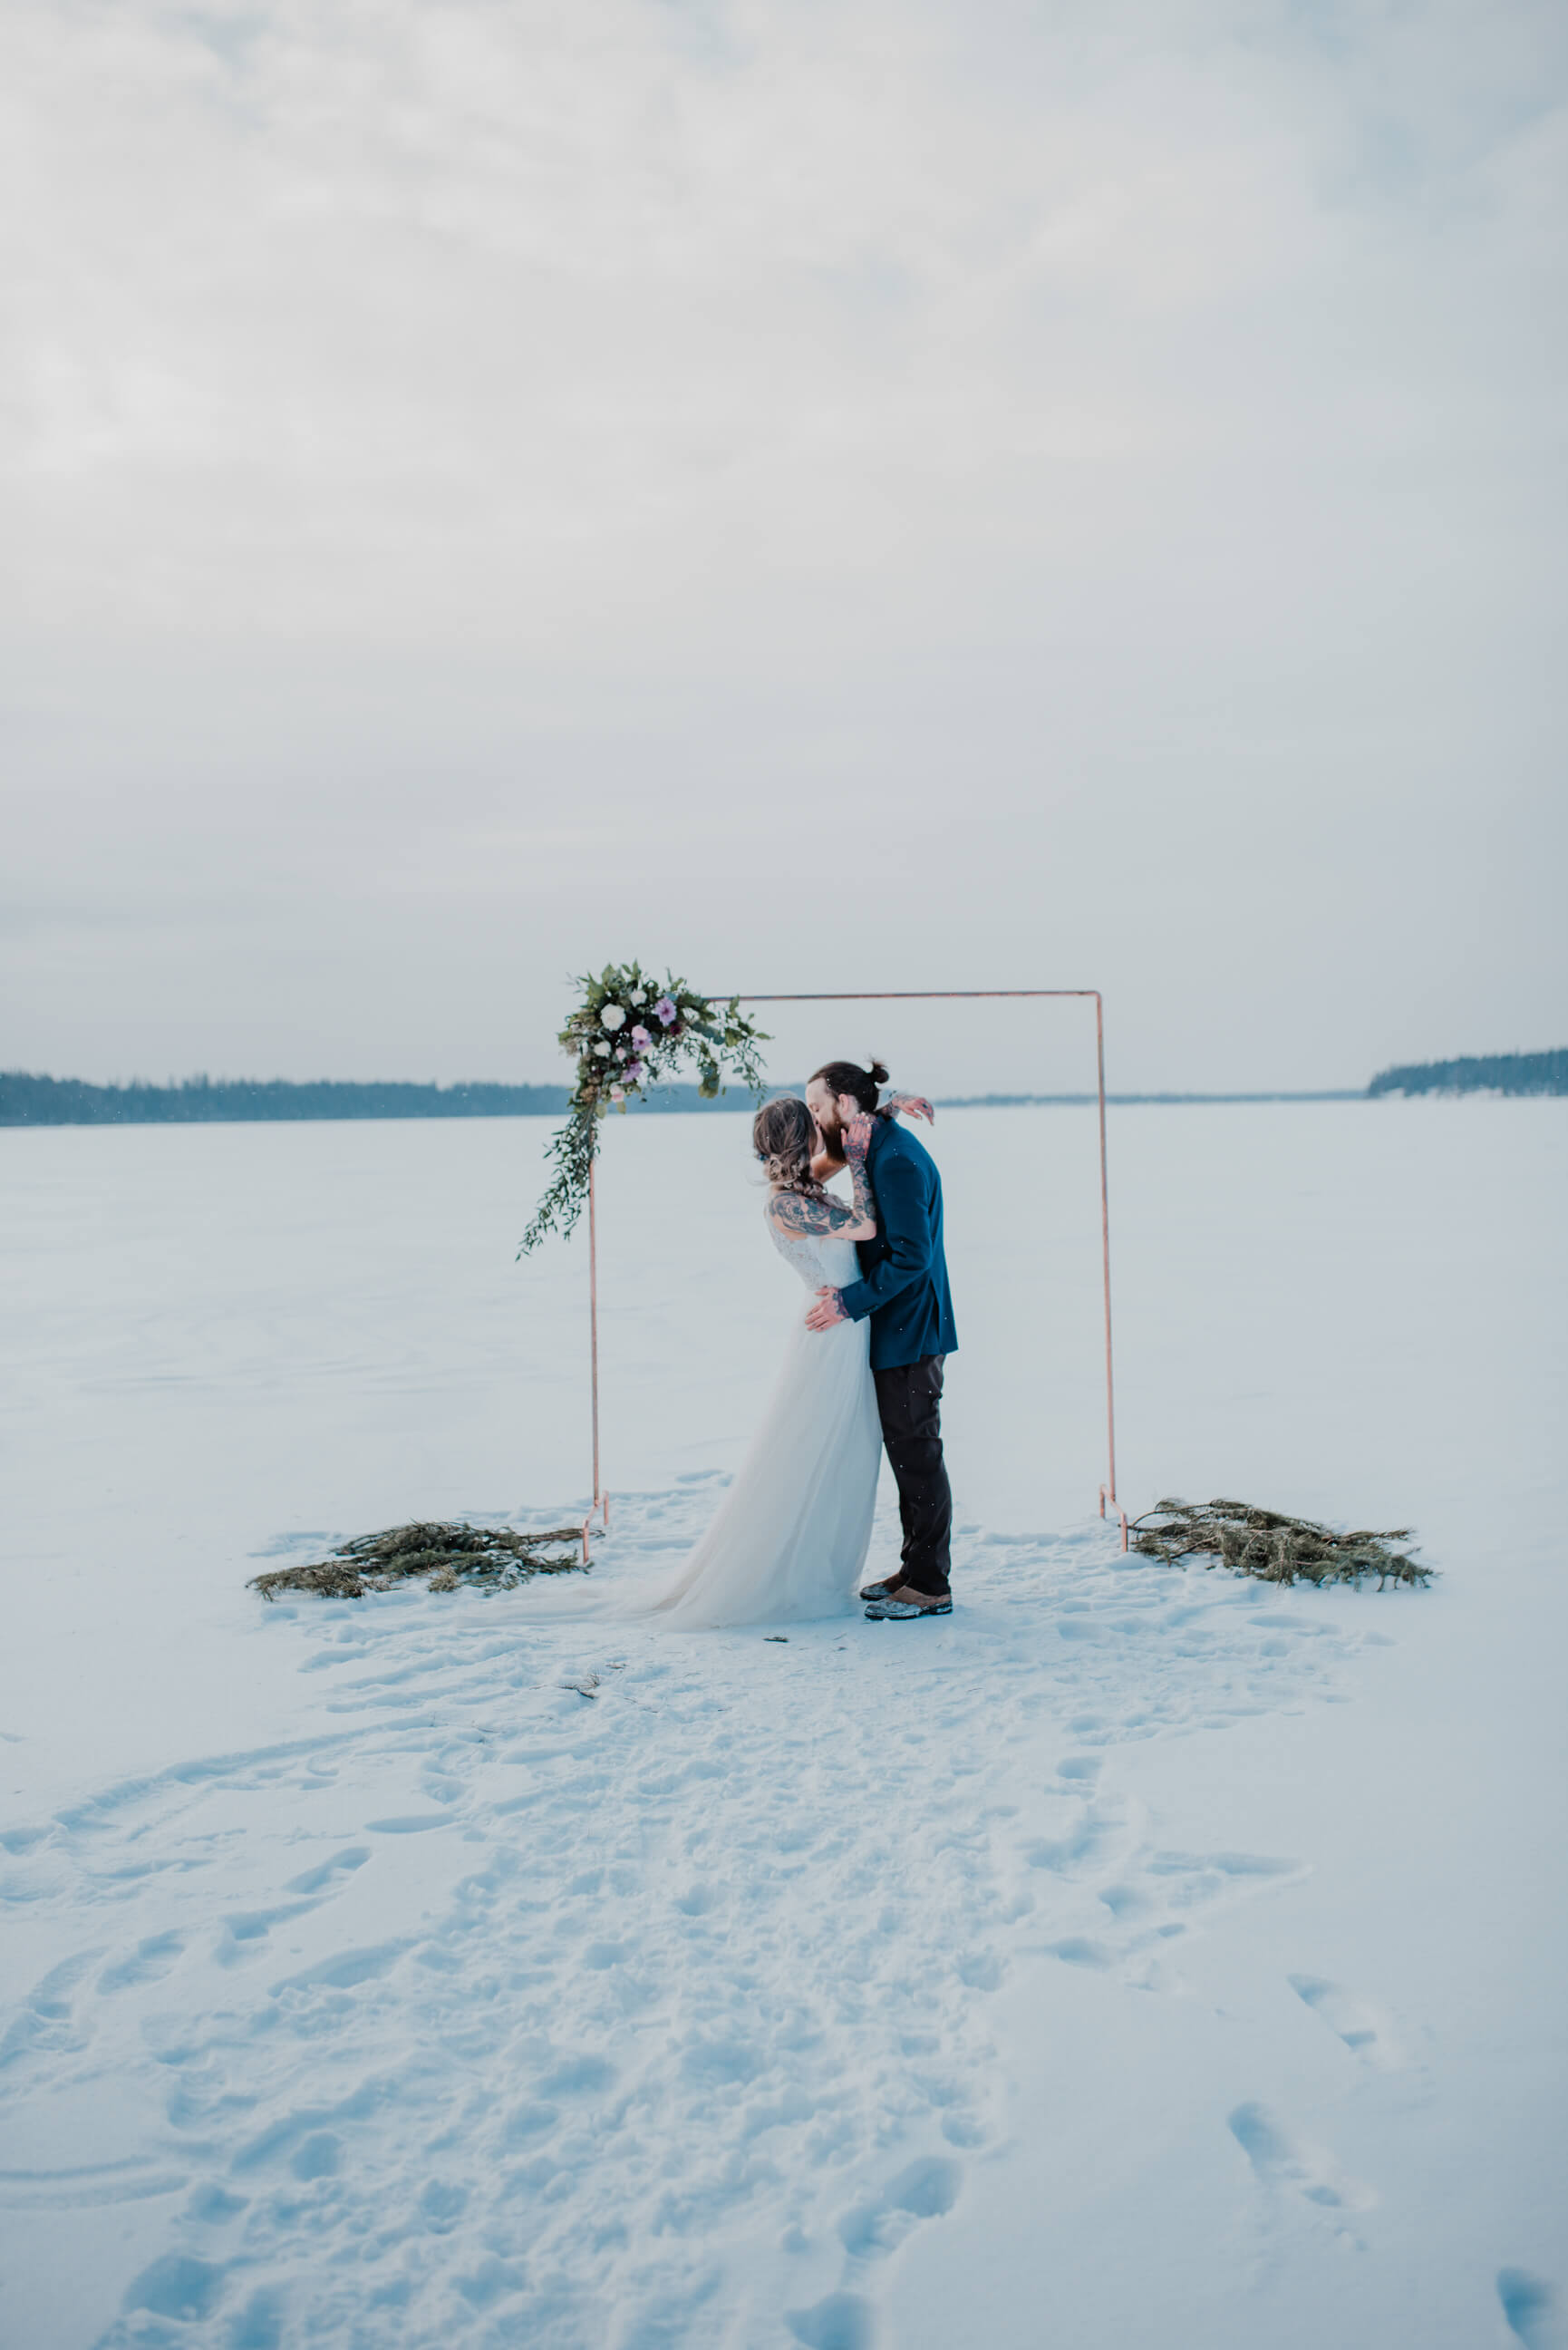 """""""All of the little details were custom designed and handmade for this particular day to match the couple's style by some of Northern B.C.'s best vendors,"""" Kayla says. -"""